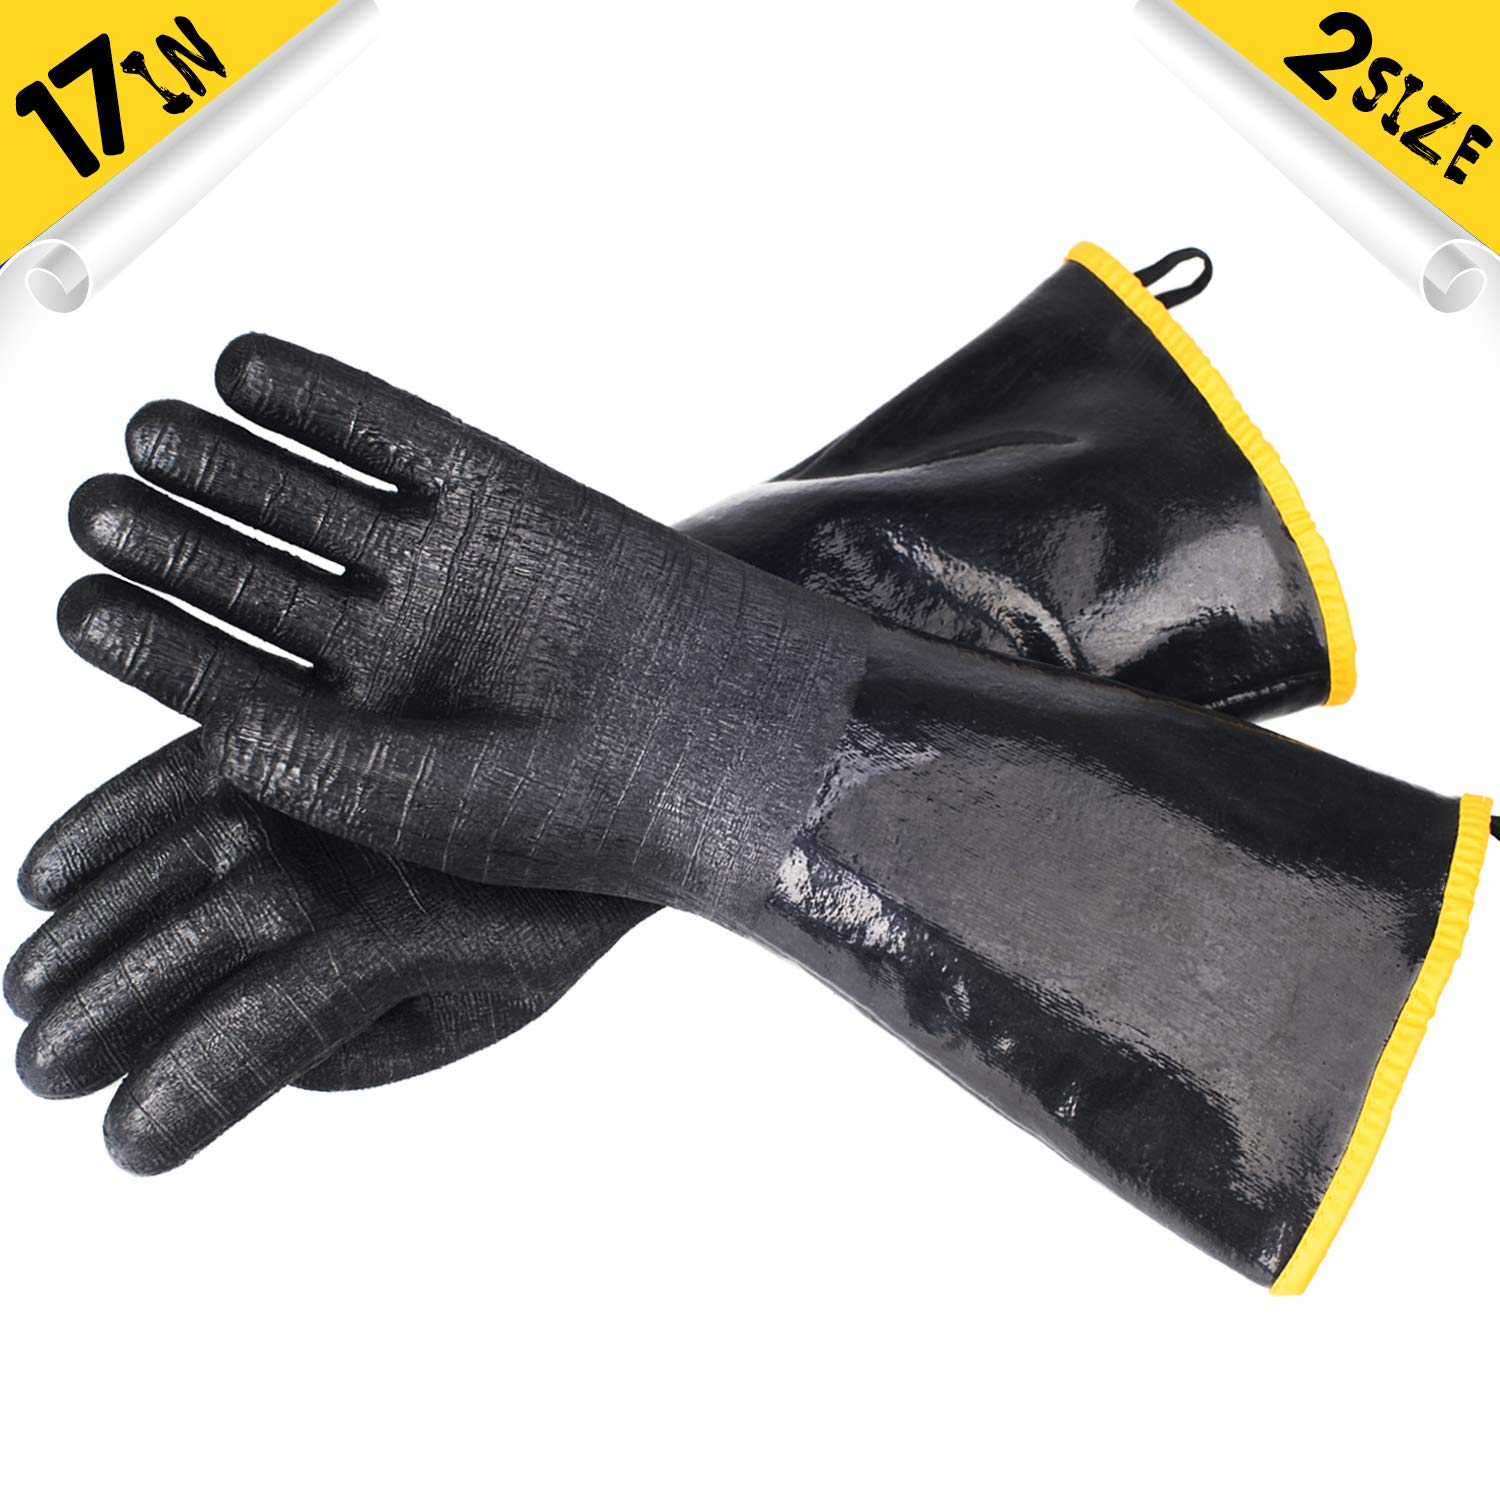 ASHLEYRIVER BBQ Grill Insulated Waterproof/Oil Heat Resistant Neoprene Coating Gloves for Barbecue/Grill/Smoker/Fry Turkey/Pot Holder/Oven mitt/Baking, Long Sleeve(17-Inch L)